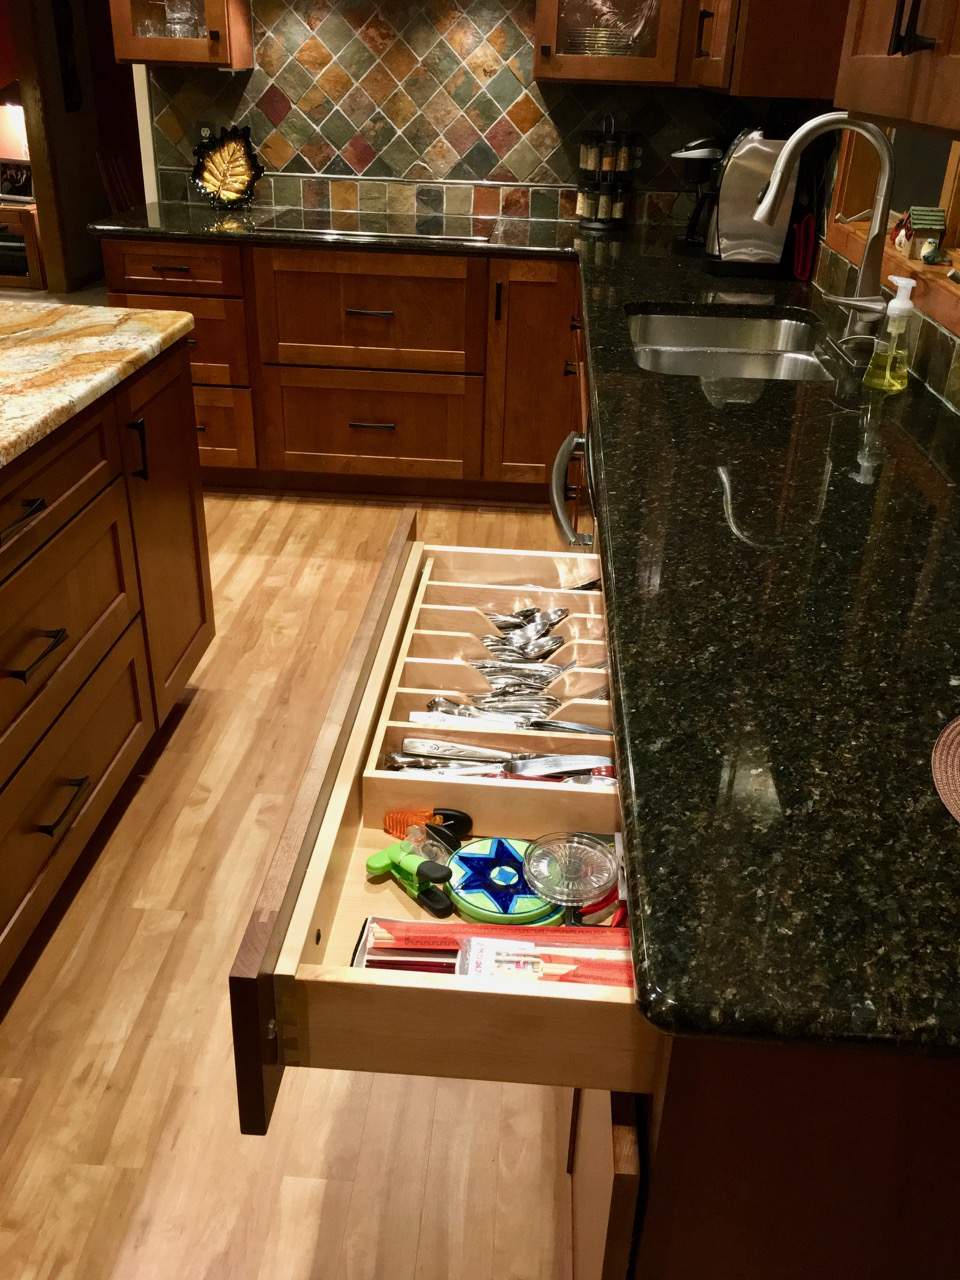 Cherry cabinets with internal organizers